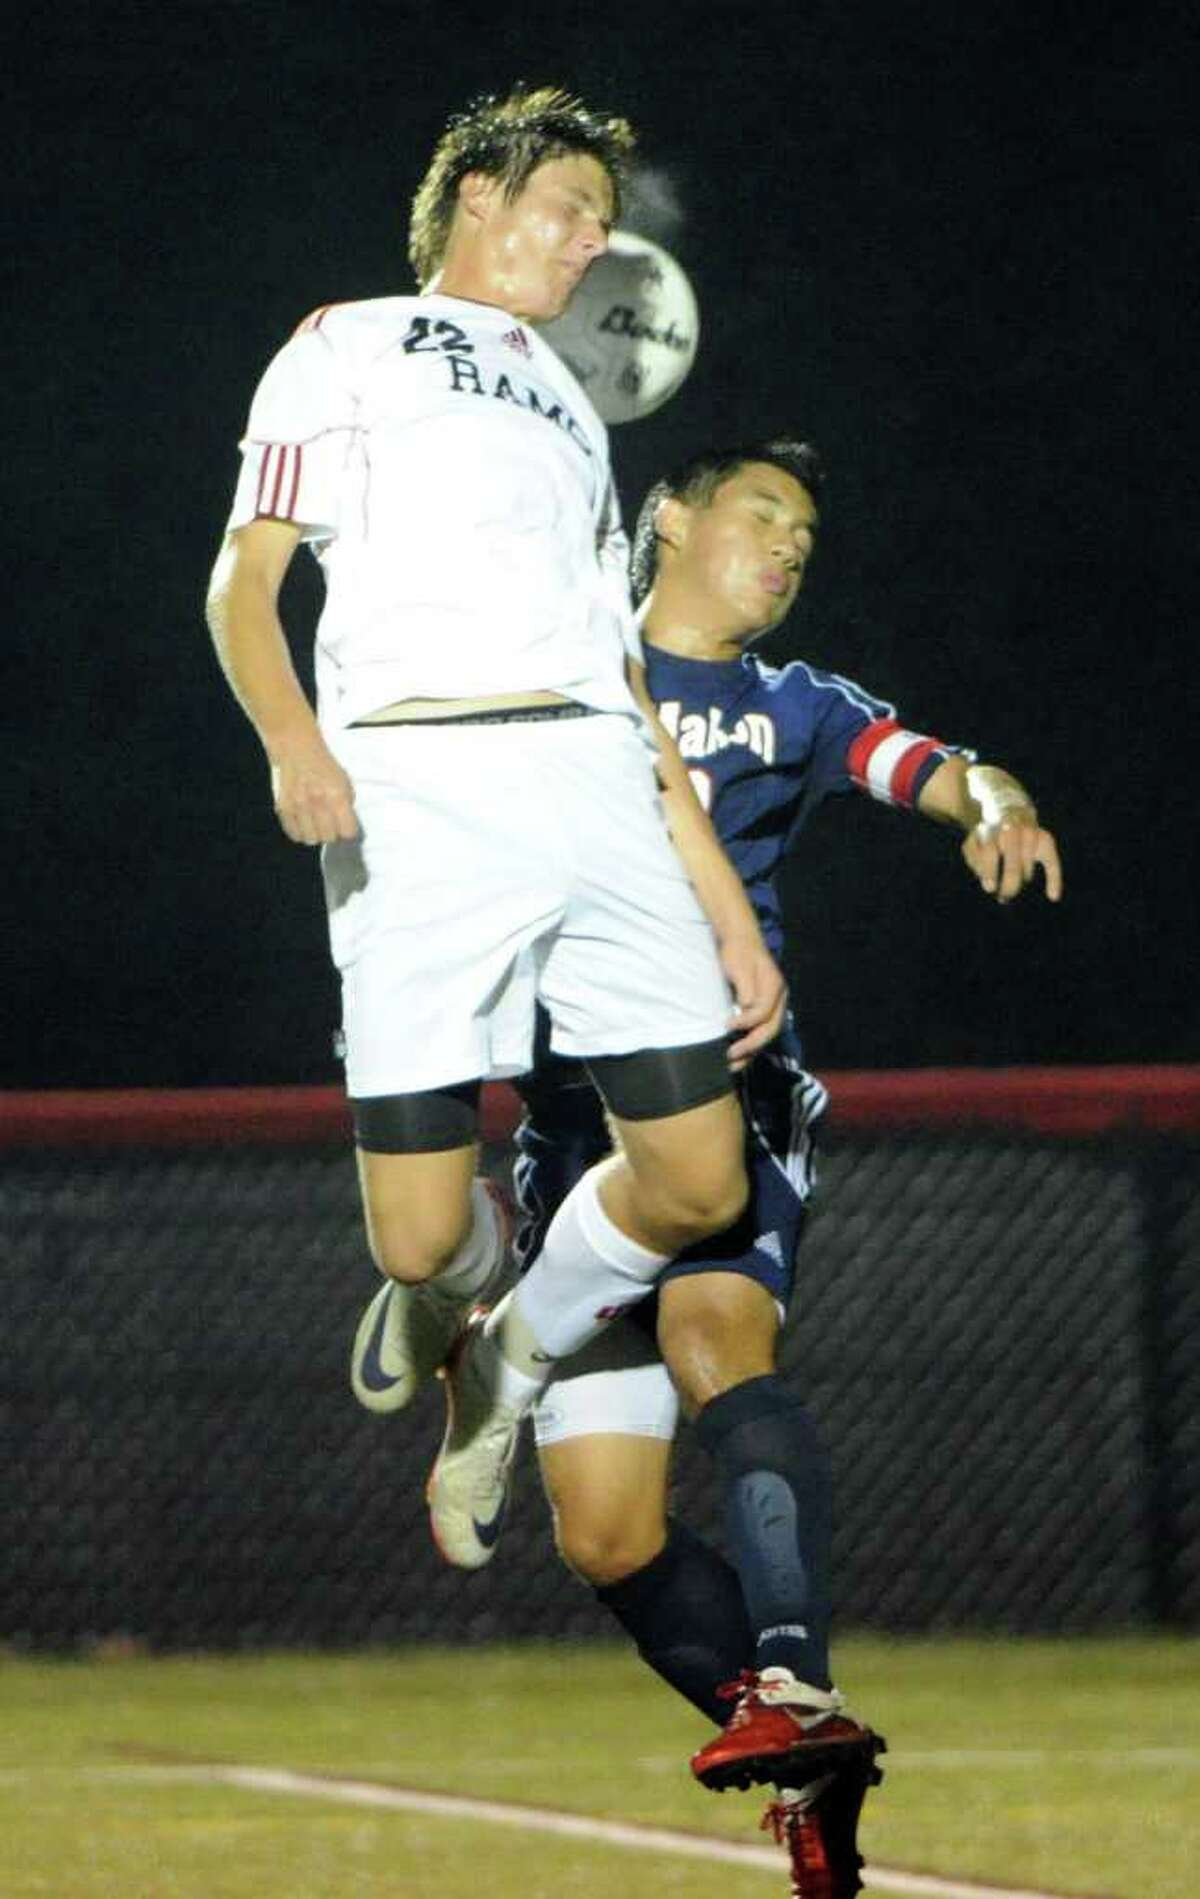 New Canaan's Nicolas Deambrosio and McMahon's Dilman Recinos in action as New Canaan High School hosts Brien McMahon in a boys soccer game at New Canaan's Dunning Stadium, Conn., Sept. 26, 2011.